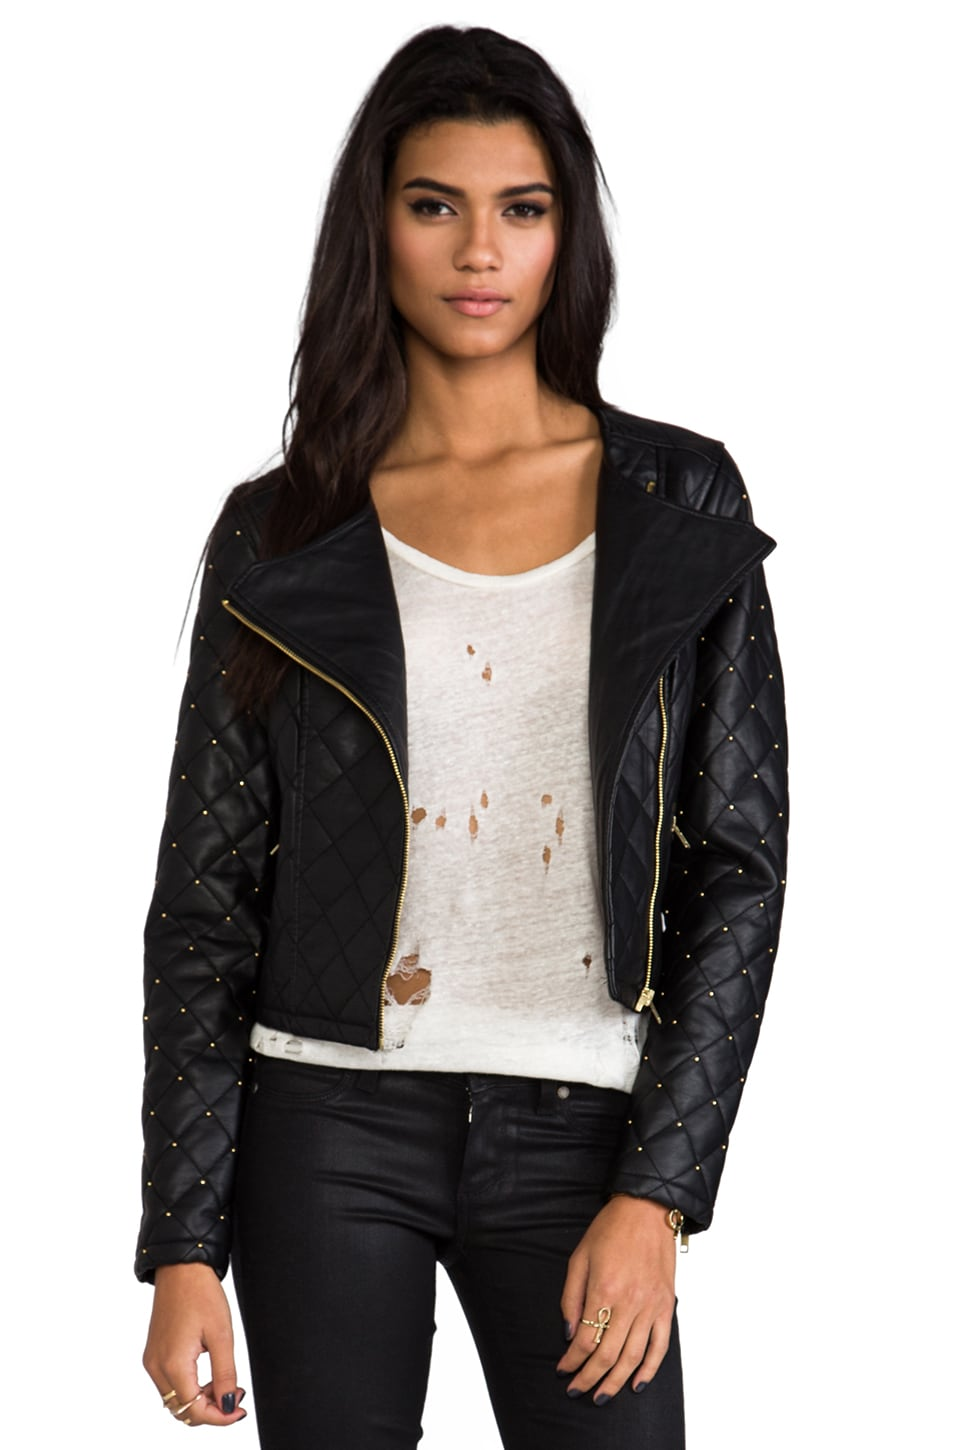 Obey Neon Night Biker Jacket in Black